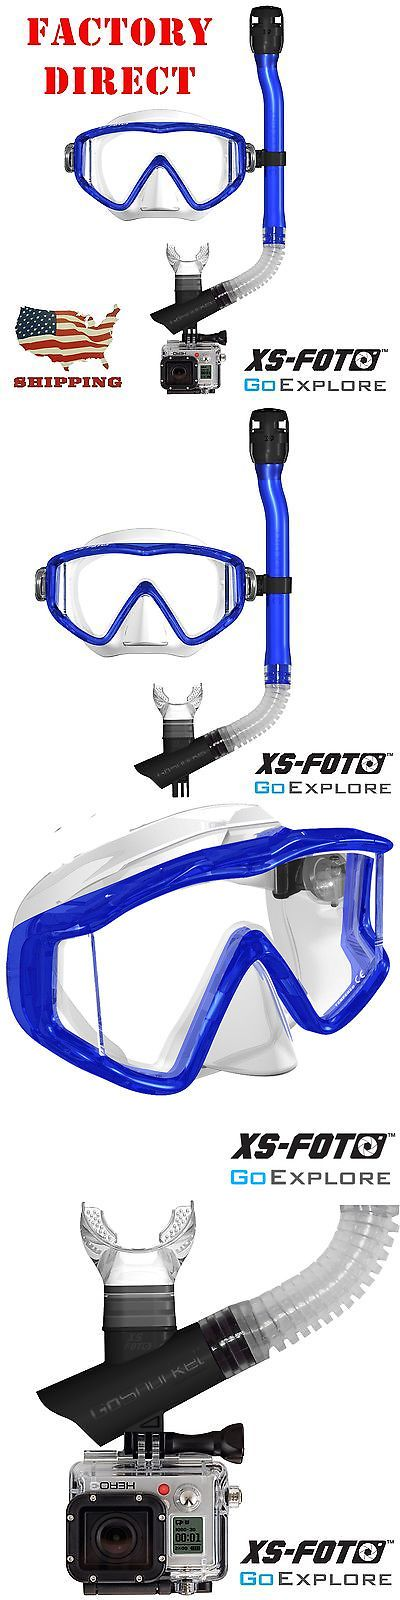 Snorkels and Sets 71162: Blue Mask And Snorkel Set With Gopro Camera Mount - Hands Free Video By Xs Foto -> BUY IT NOW ONLY: $34.99 on eBay!